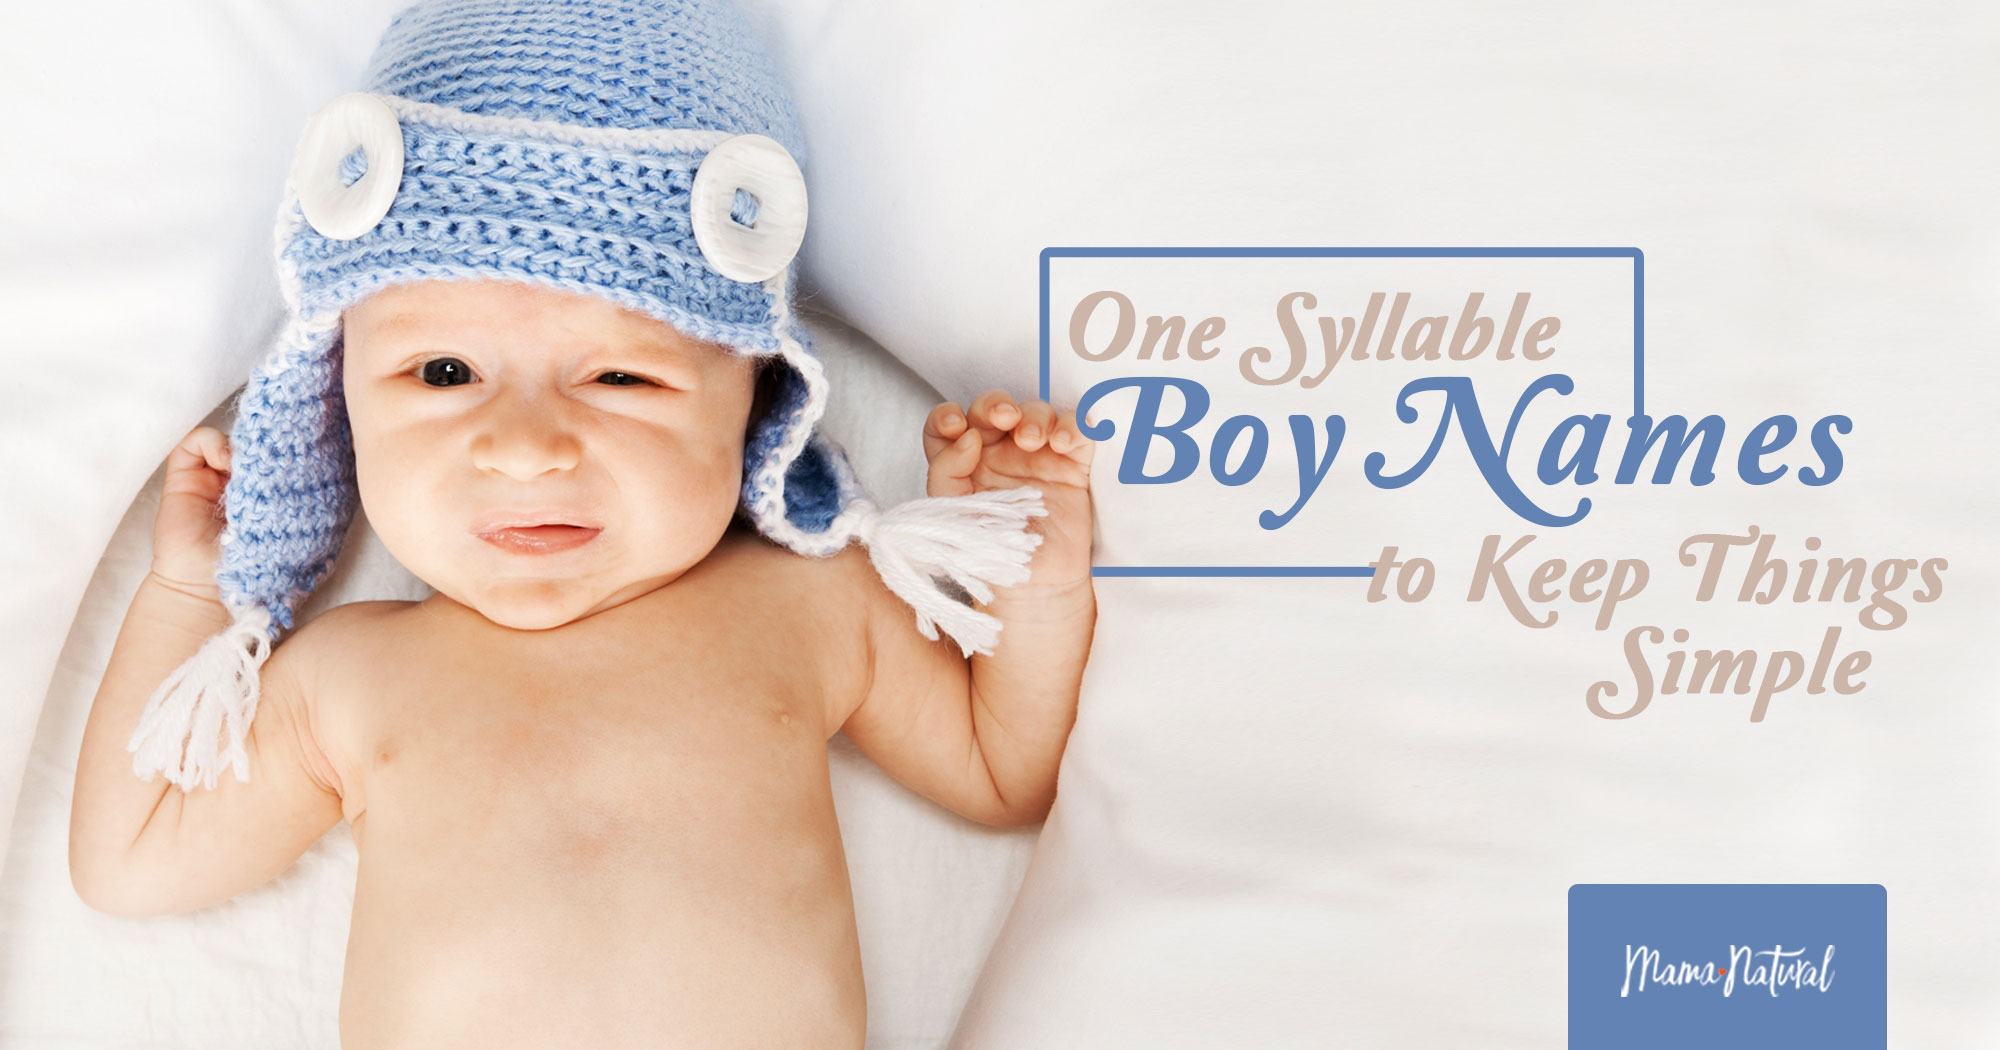 One Syllable Boy Names to Keep Things Simple | Mama Natural